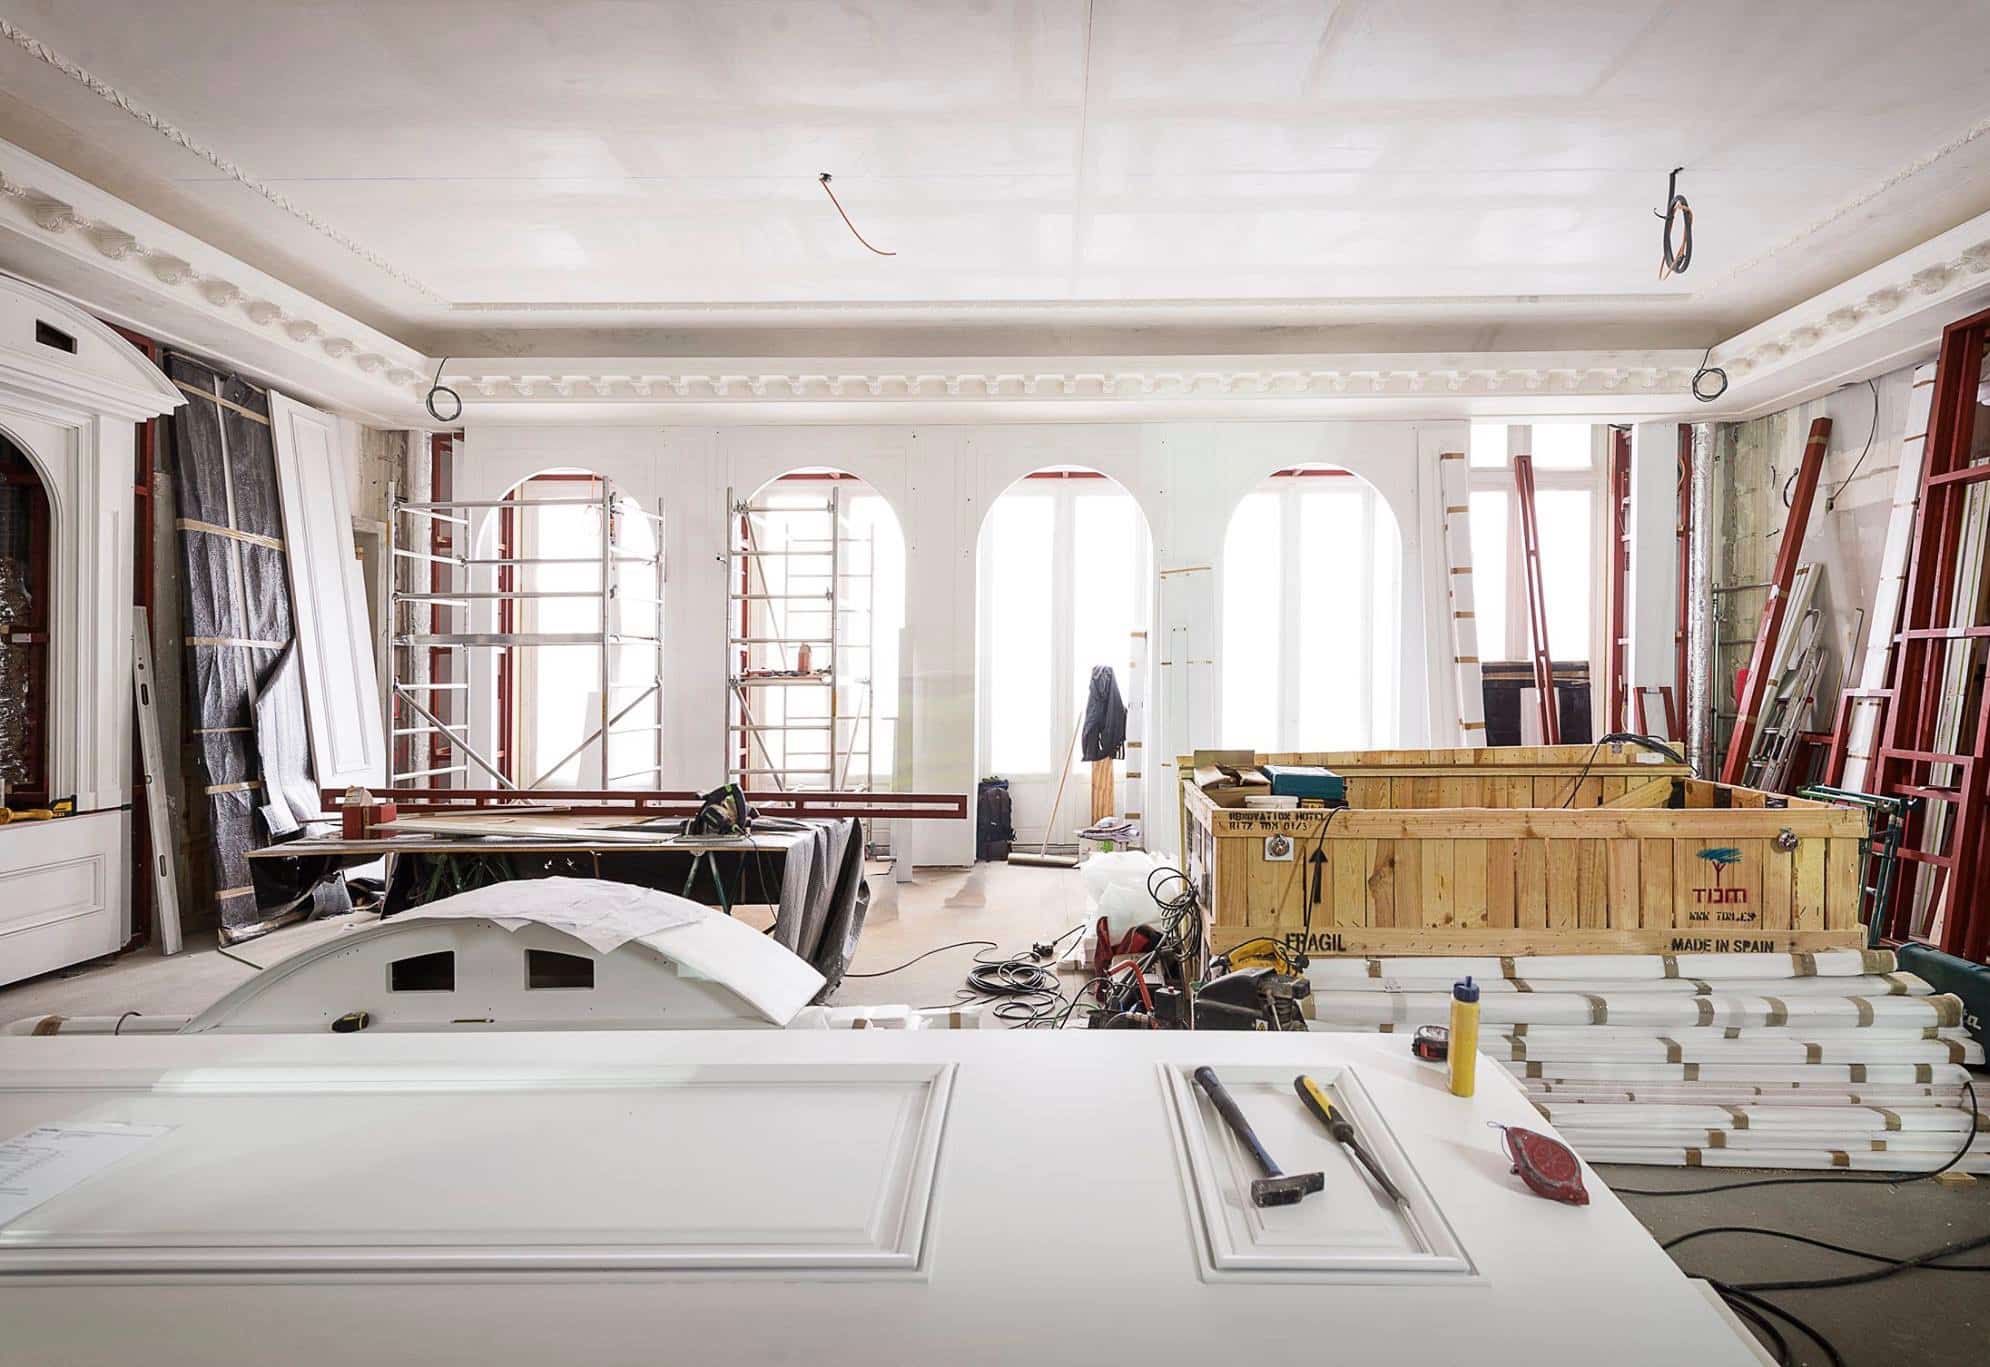 How Much Does It Cost To Renovate An Apartment In Paris